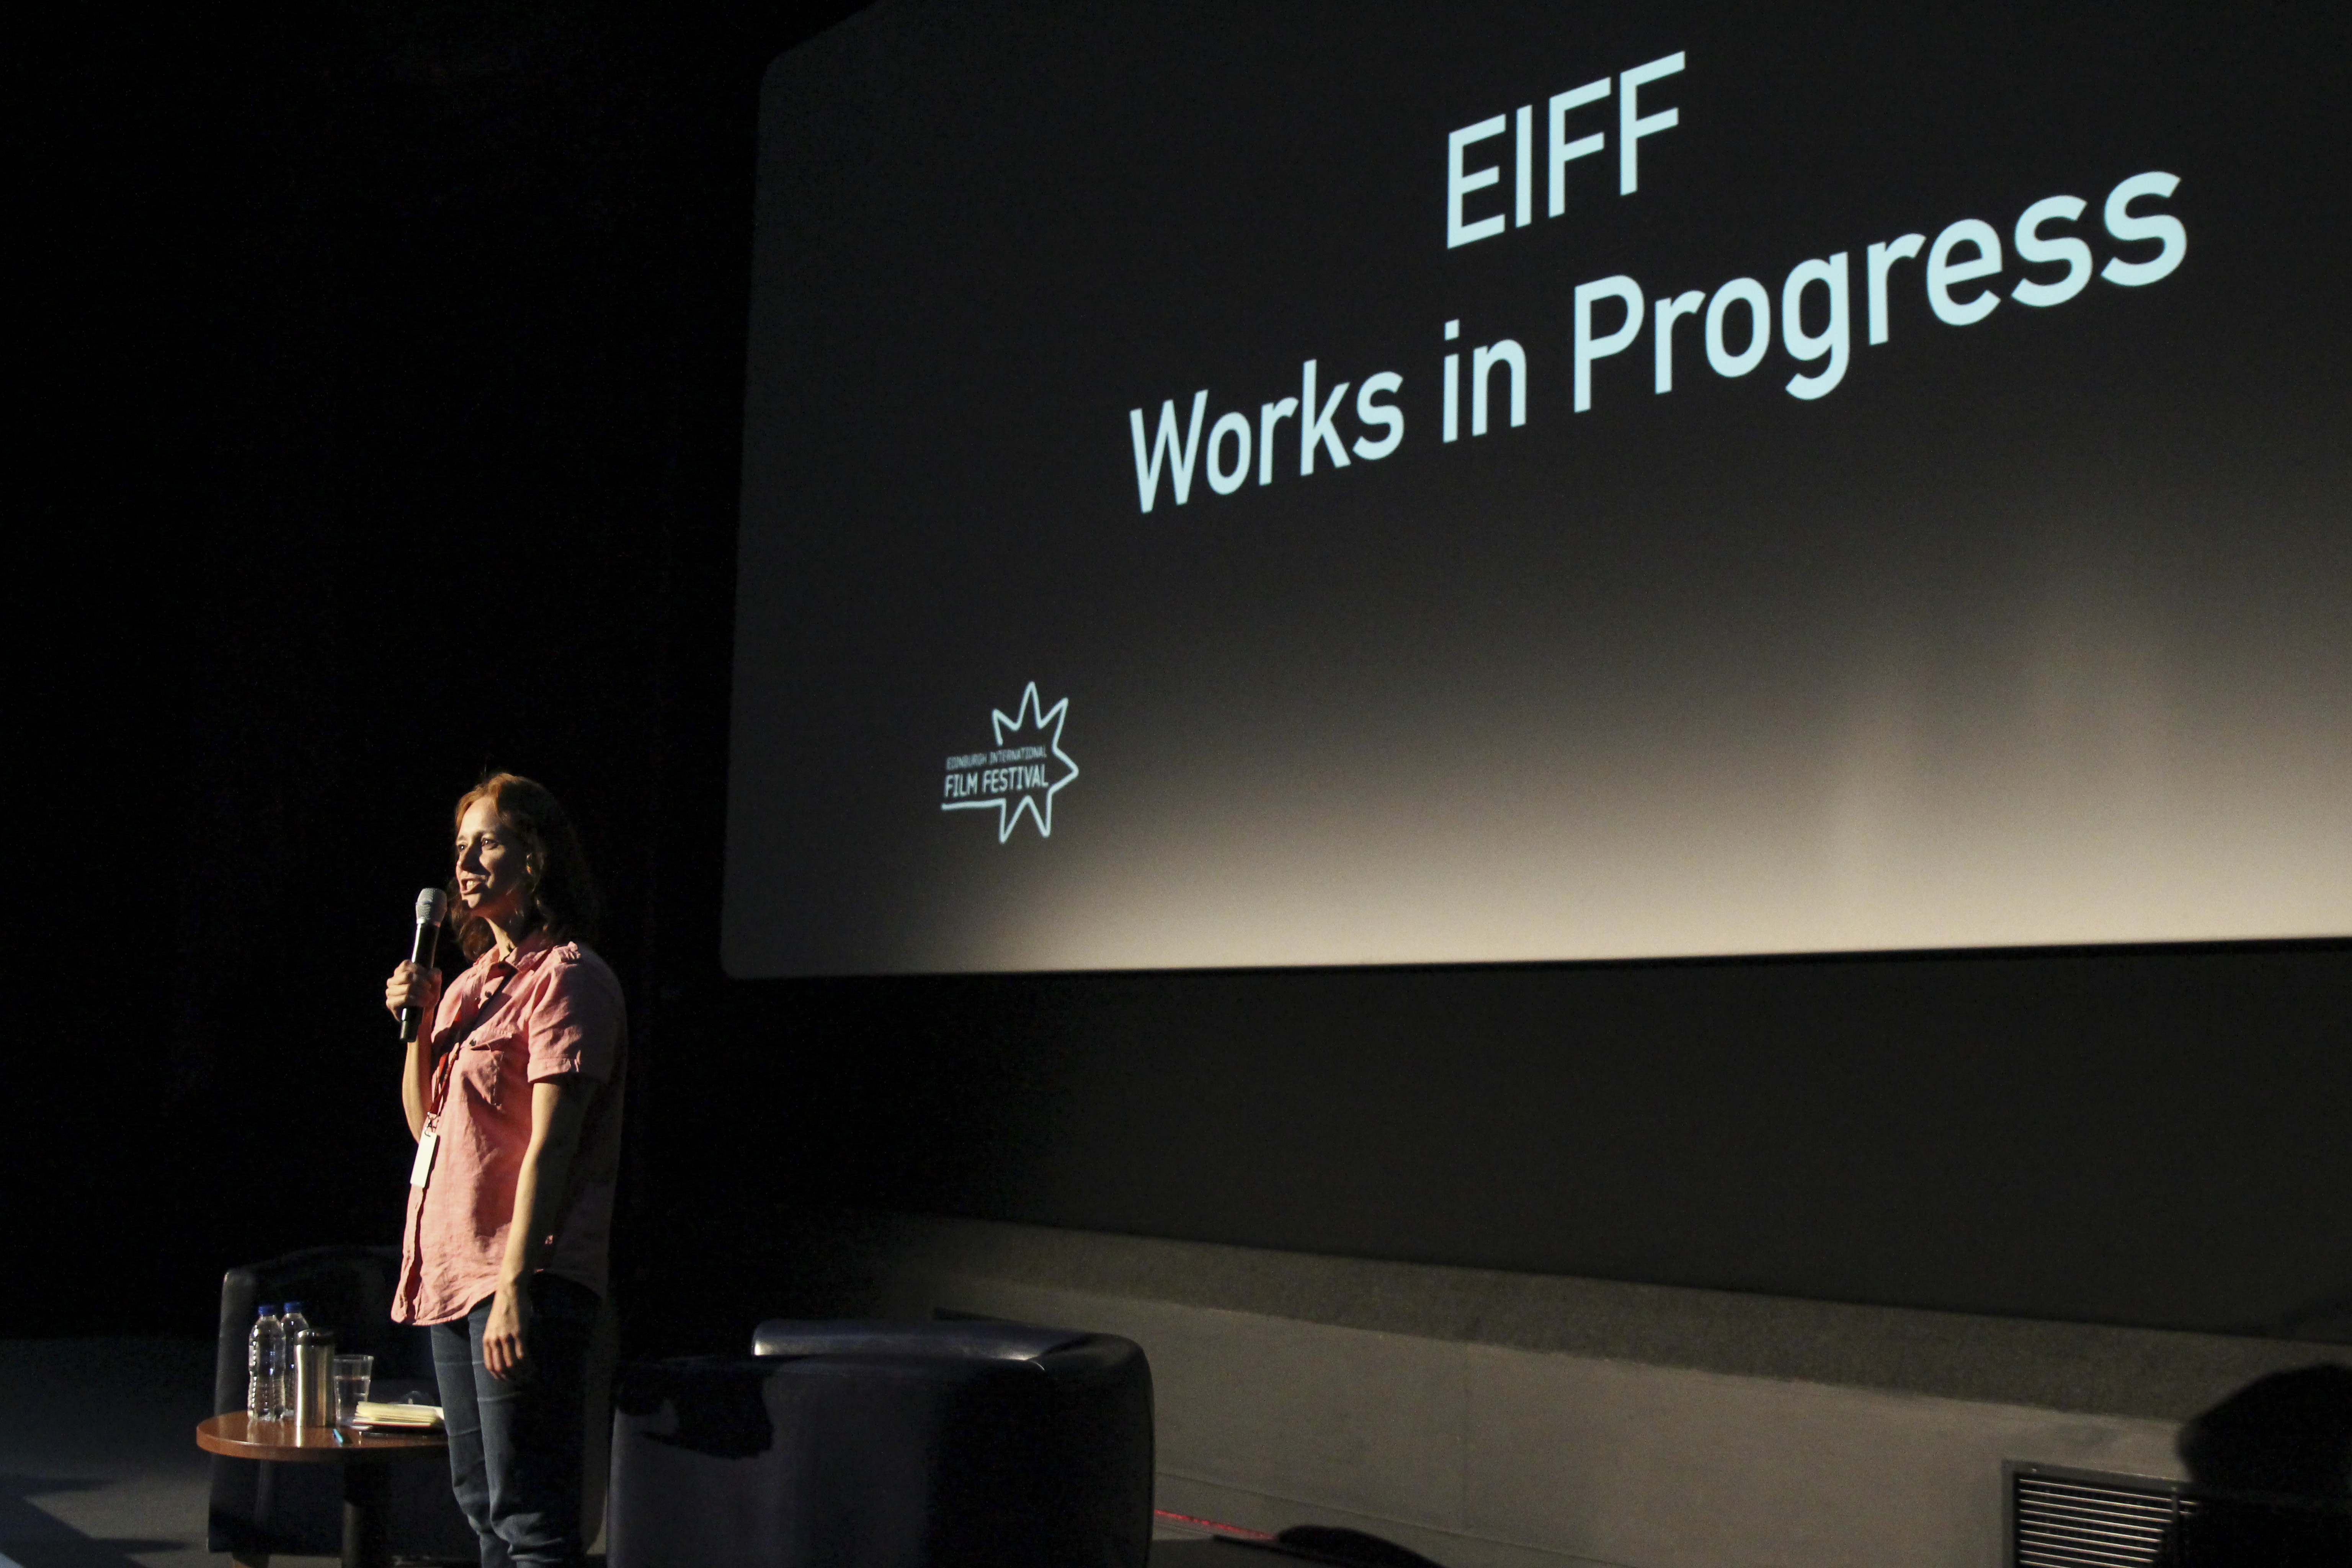 EIFF Works In Progress